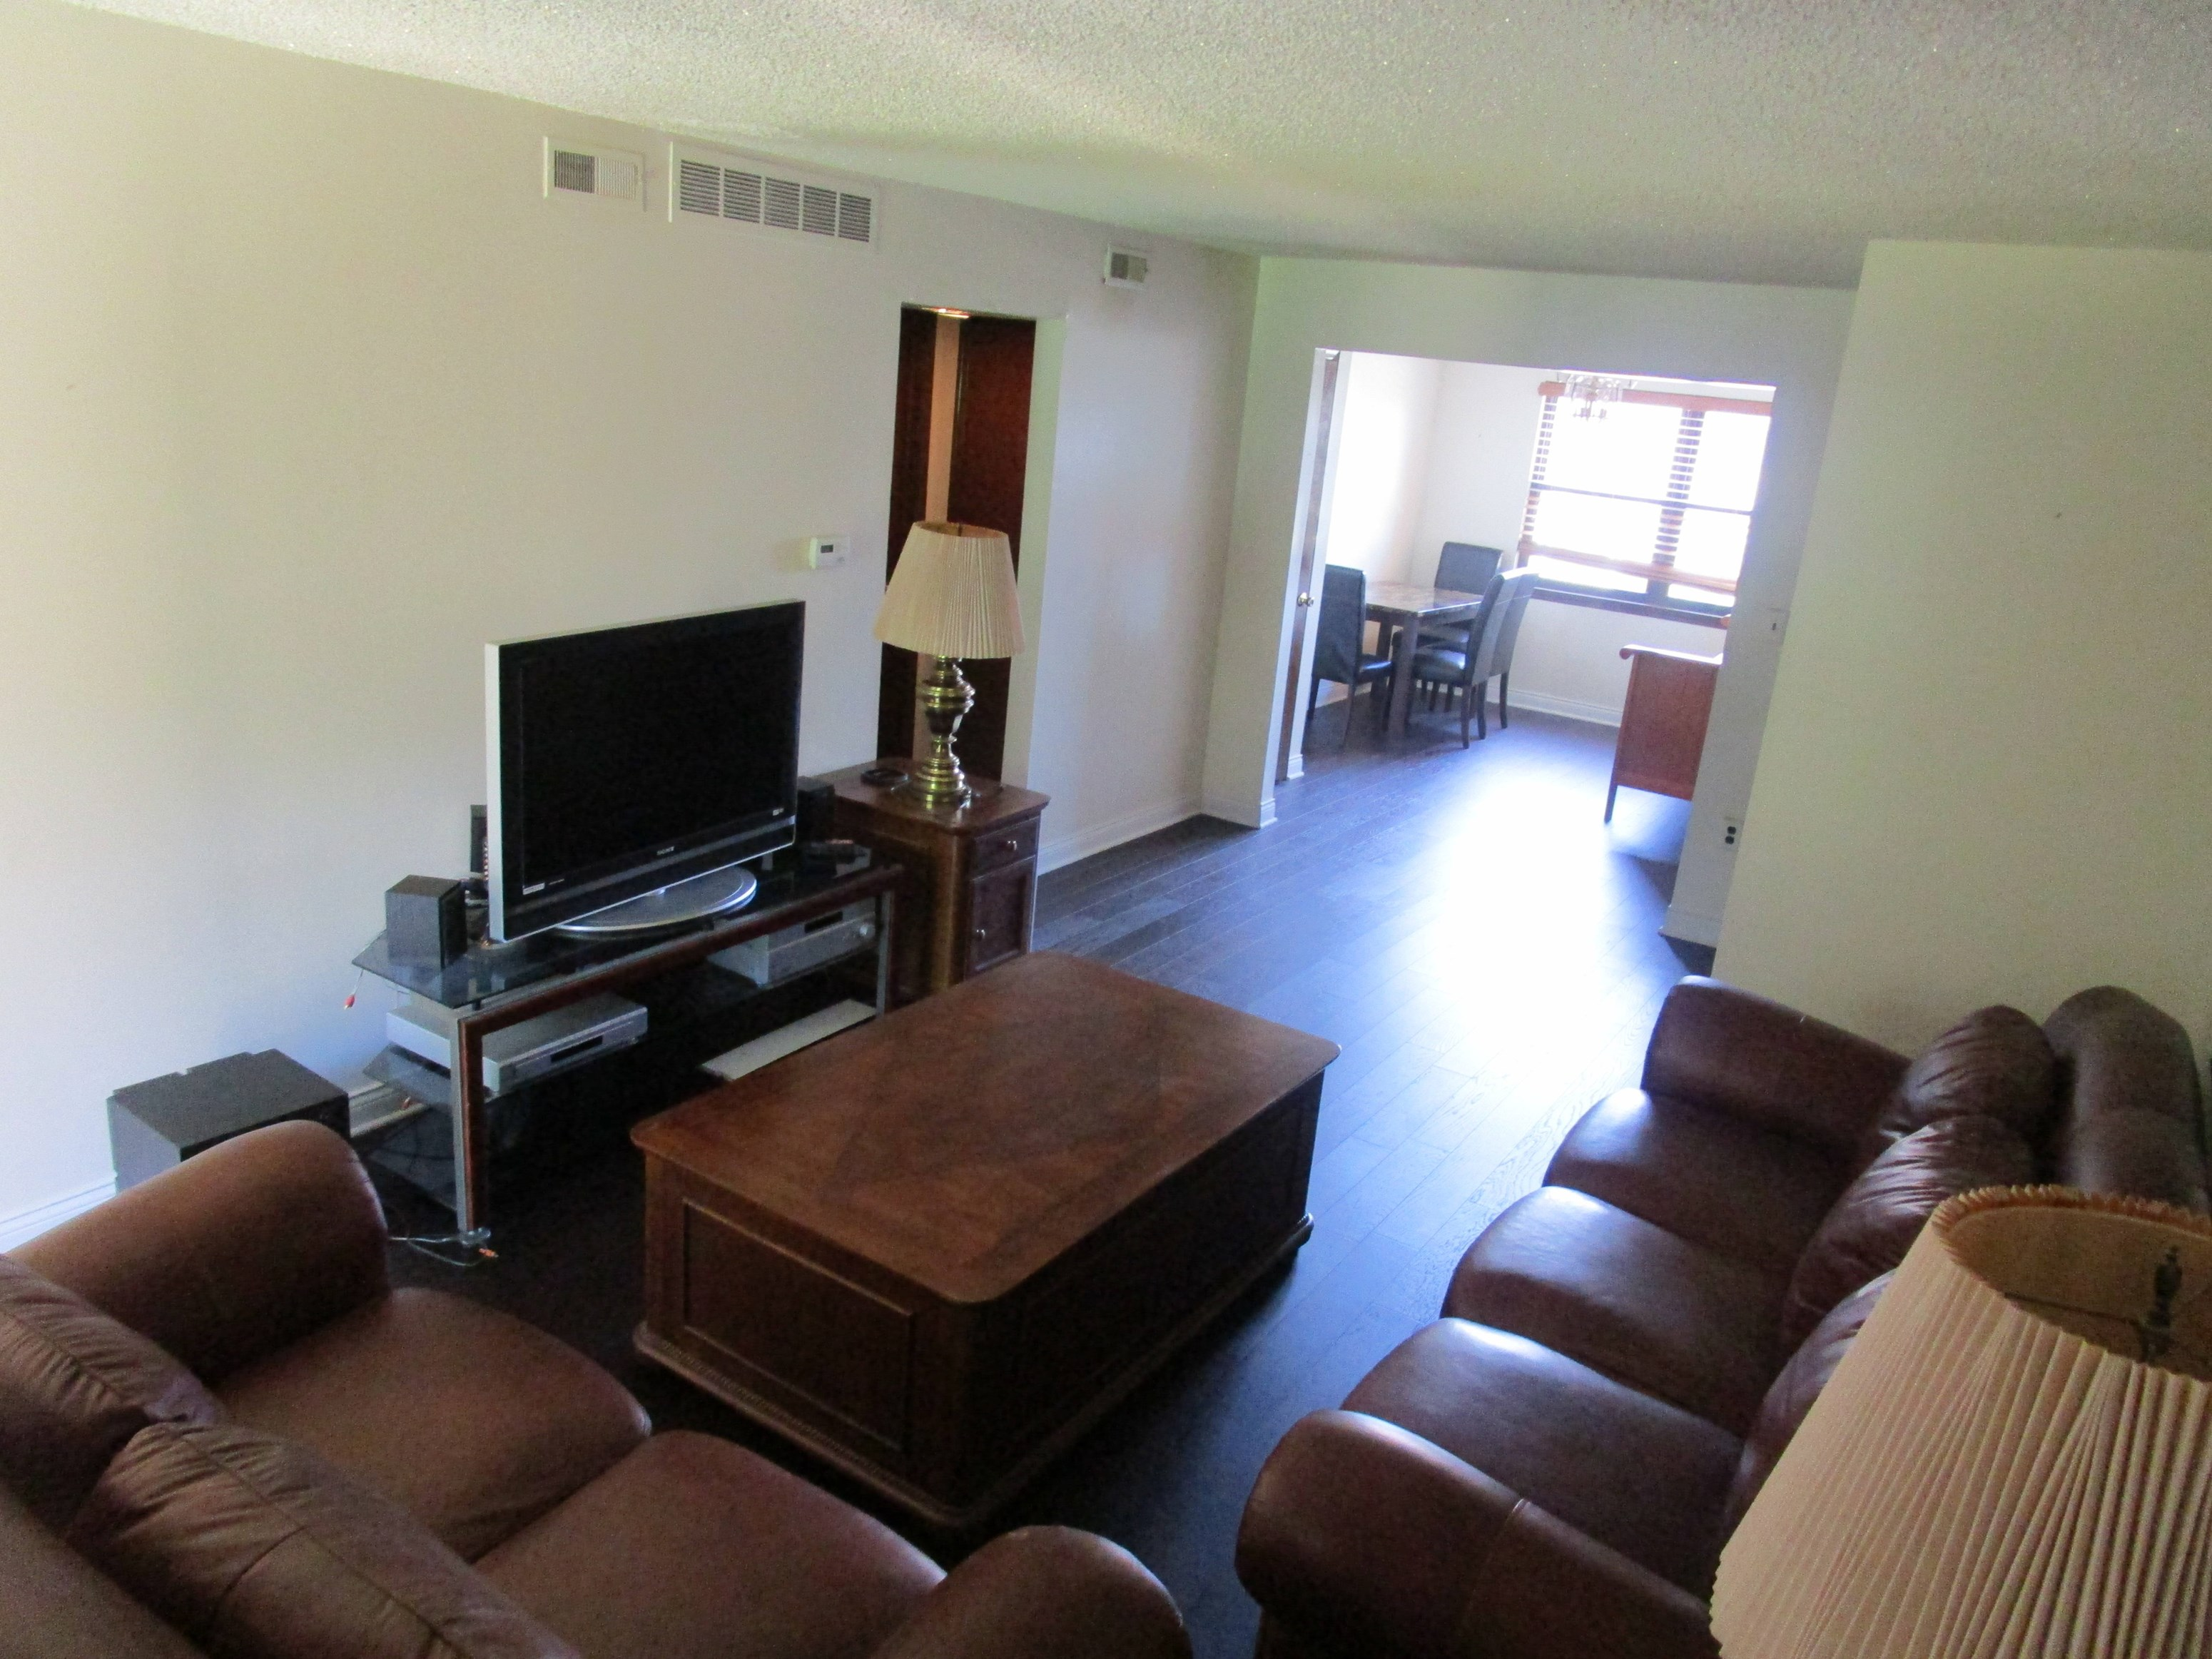 Page 2 of house for rent in edison nj apartments flats for Hardwood floors edison nj